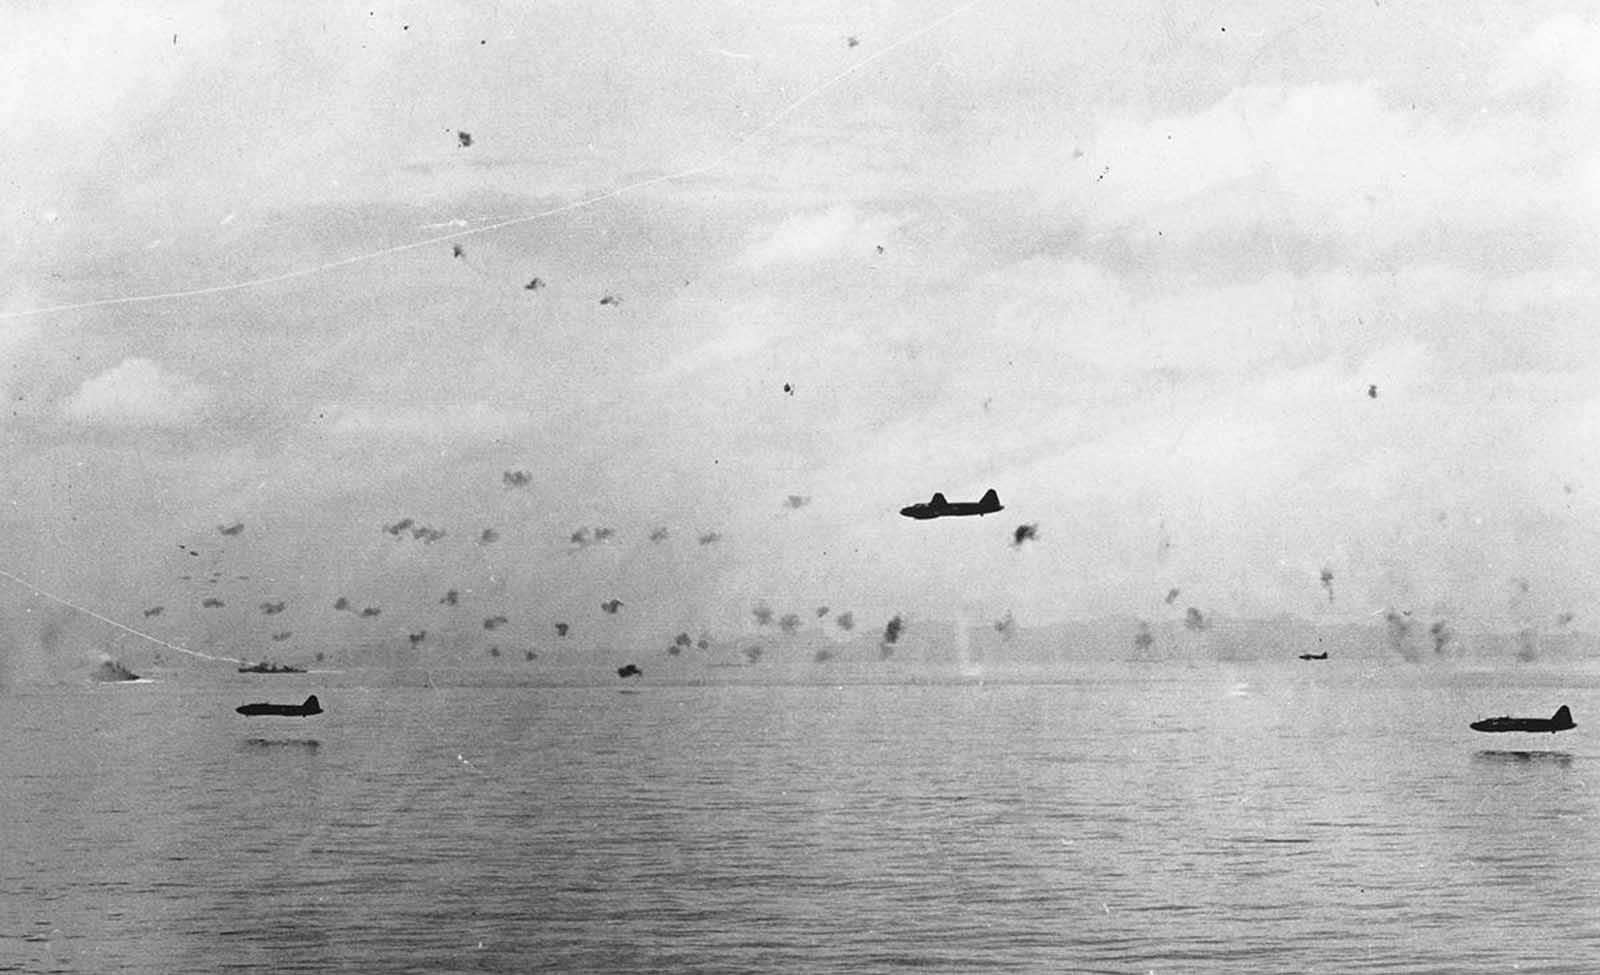 Japanese bomber planes sweep in very low for an attack on U.S. warships and transporters, on September 25, 1942, at an unknown location in the Pacific Ocean.